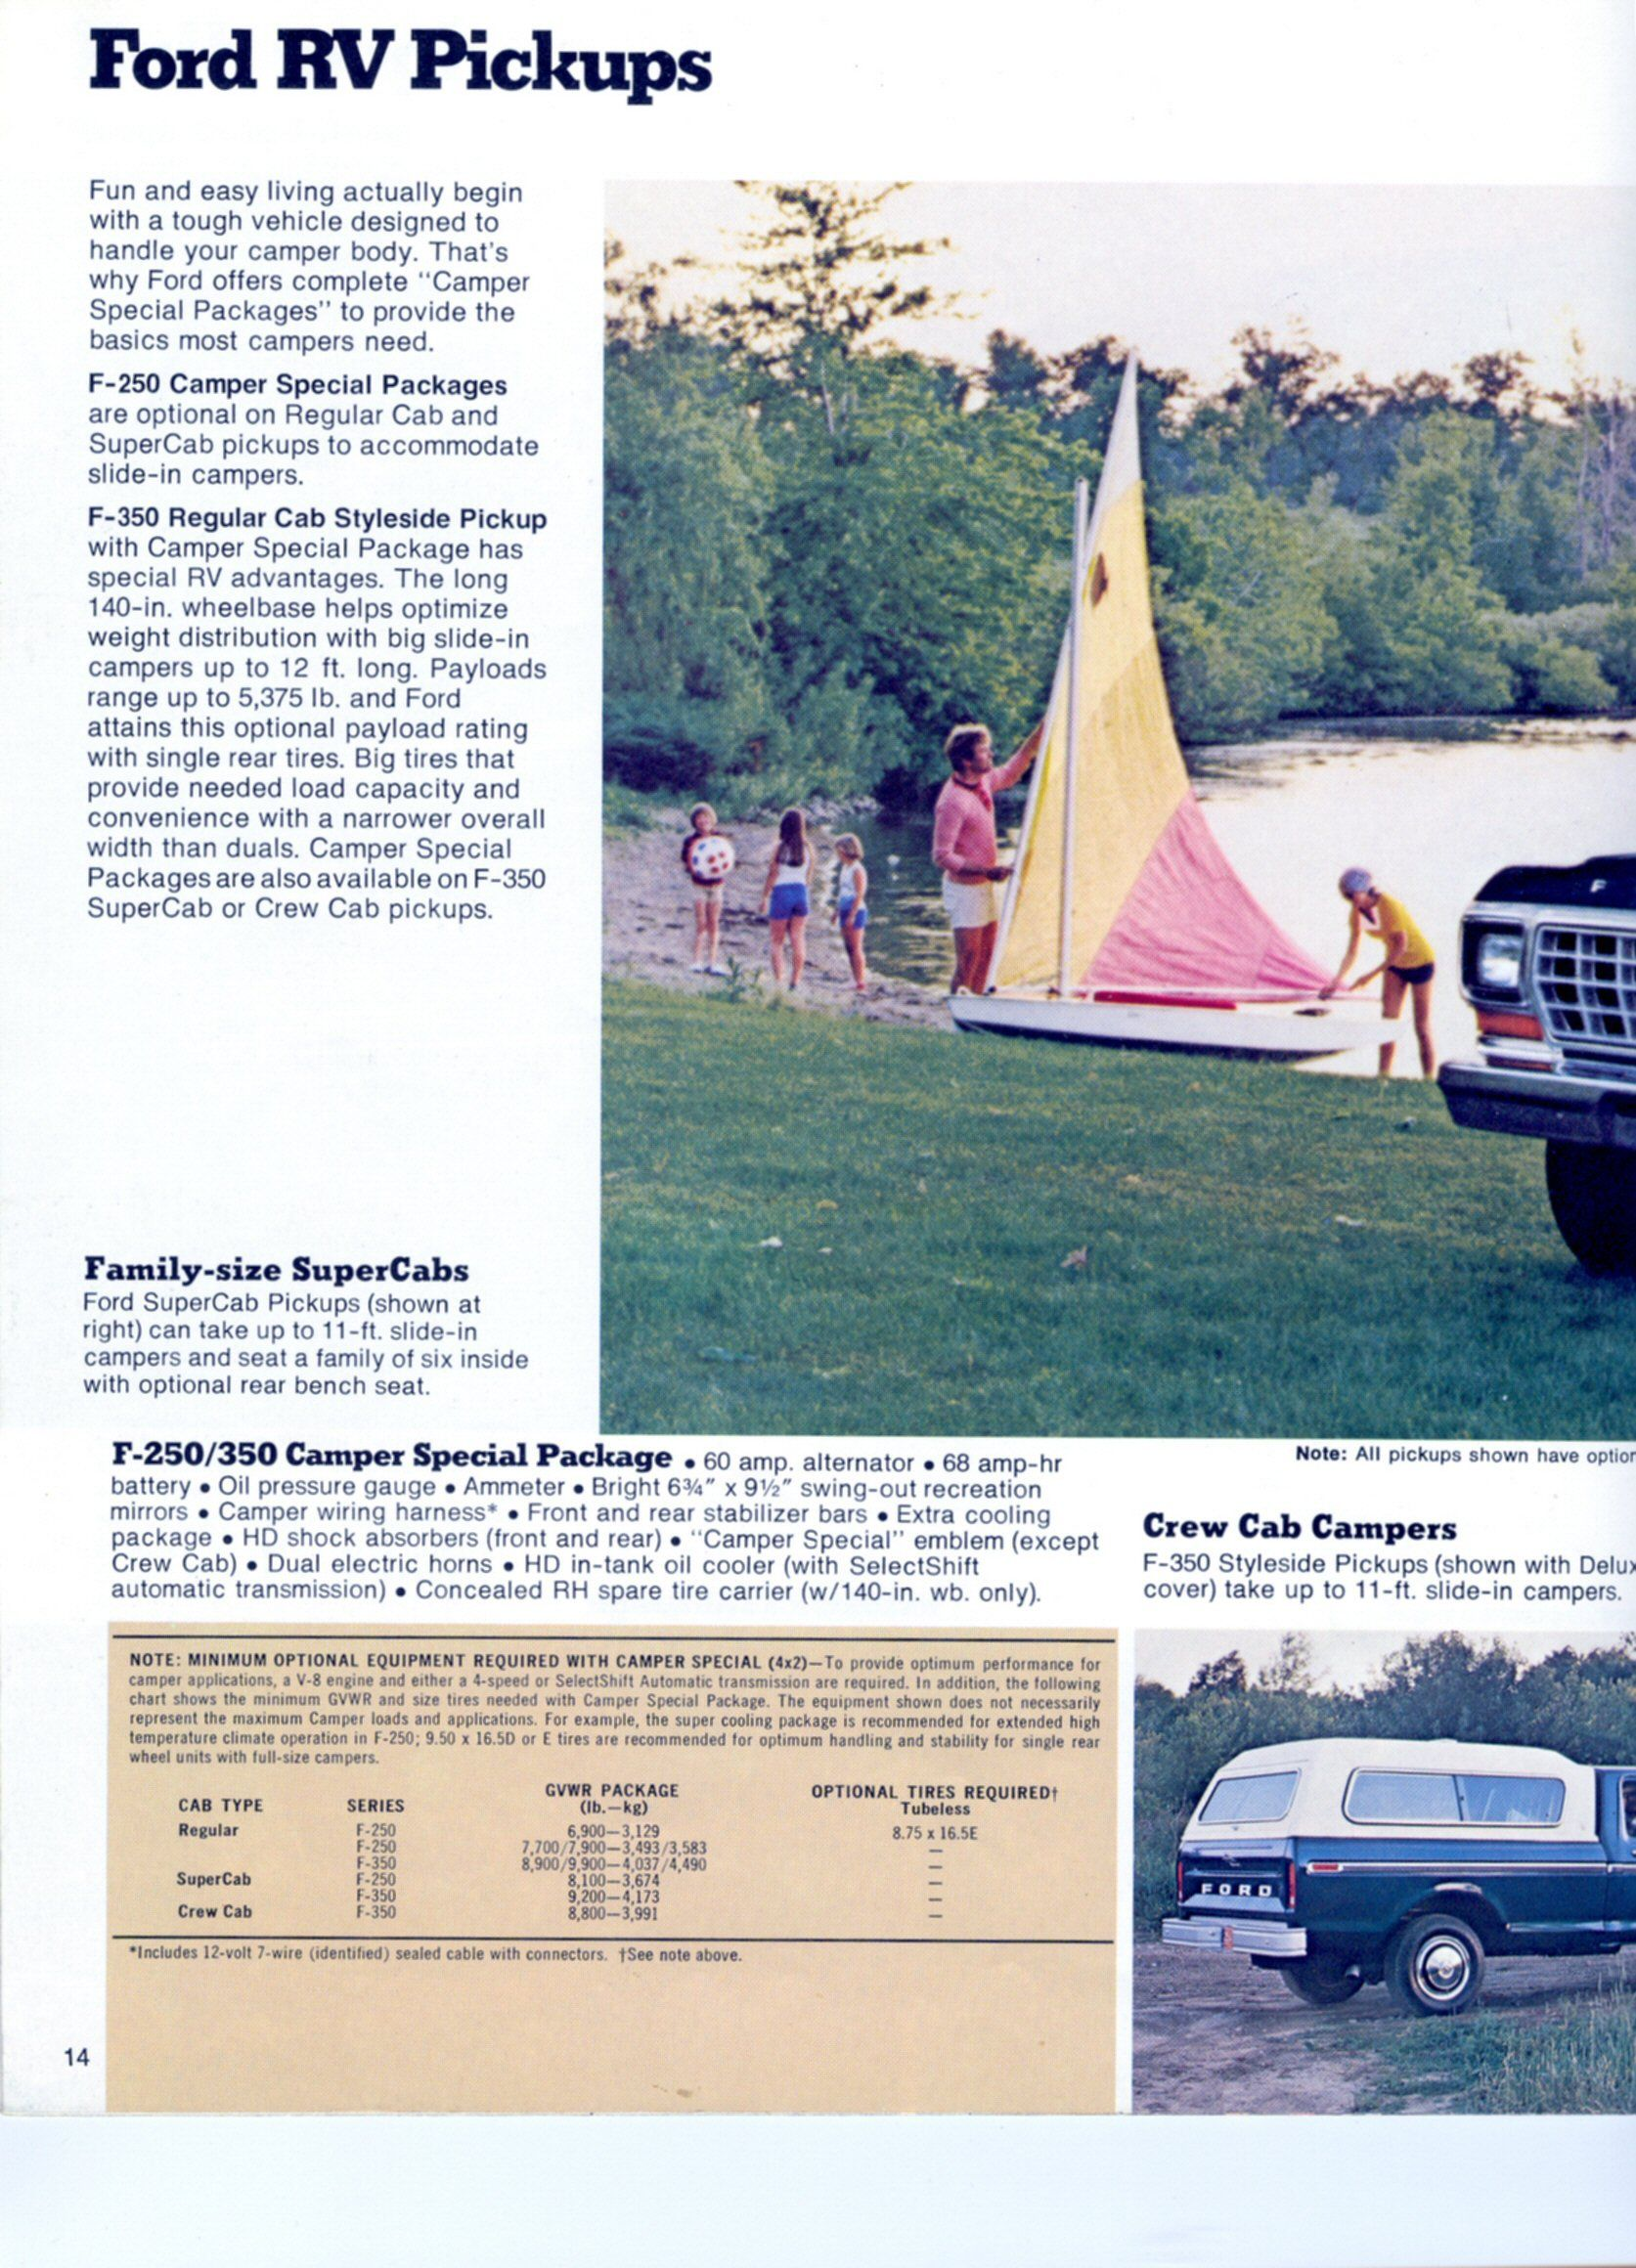 Camper Wiring Harness F on grand marquis wiring harness, model t wiring harness, f100 wiring harness, wrangler wiring harness, f650 wiring harness, h2 wiring harness, truck wiring harness, tundra wiring harness, dodge wiring harness, cherokee wiring harness, fj cruiser wiring harness, ranger wiring harness, f150 wiring harness, f550 wiring harness, ford wiring harness, gt wiring harness, hhr wiring harness, h3 wiring harness, diesel wiring harness, mustang wiring harness,